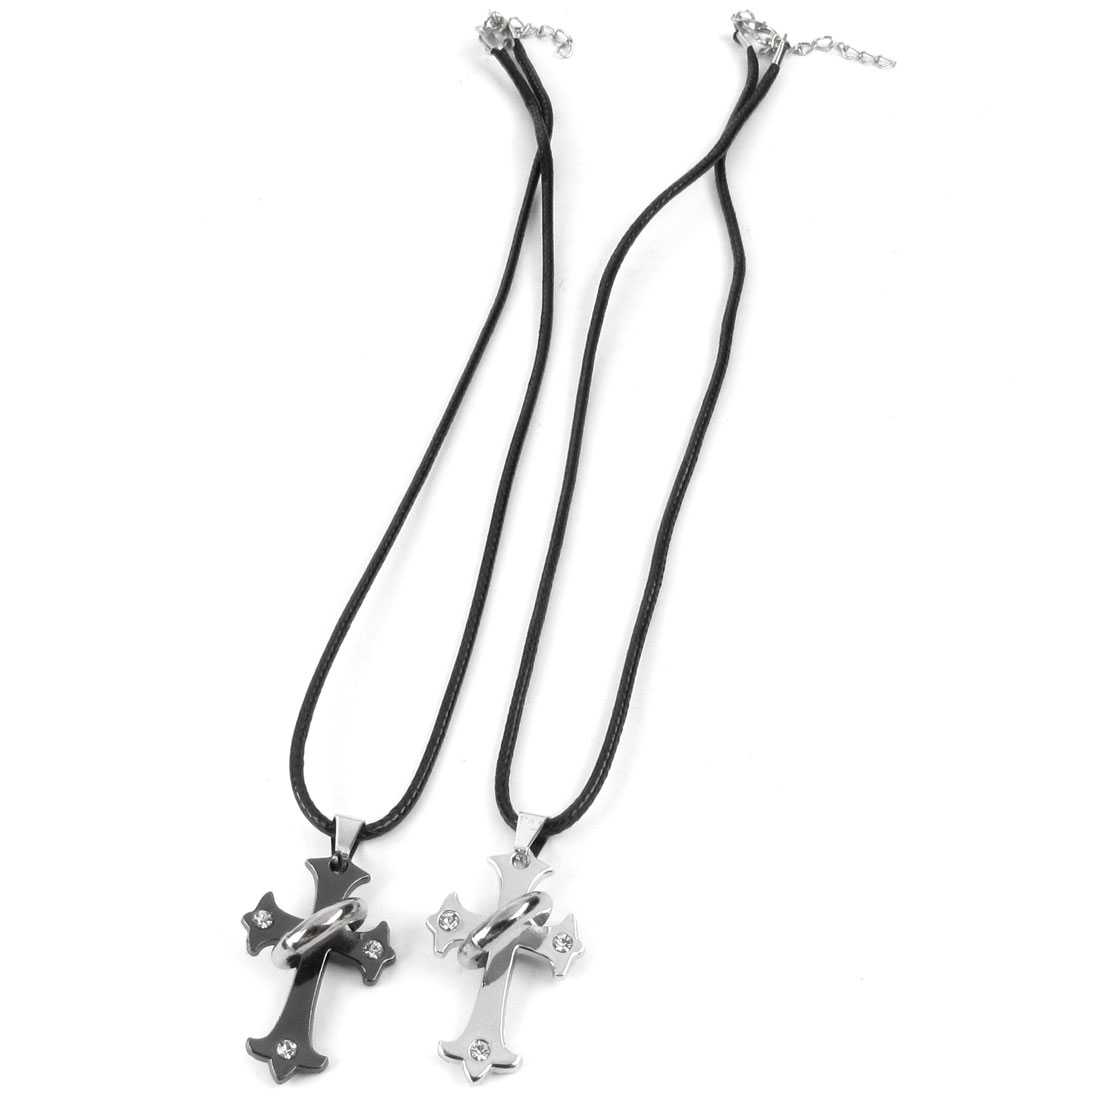 Couples Black Silver Tone Rhinestone Inlaid Ring Decor Cross Style Necklace